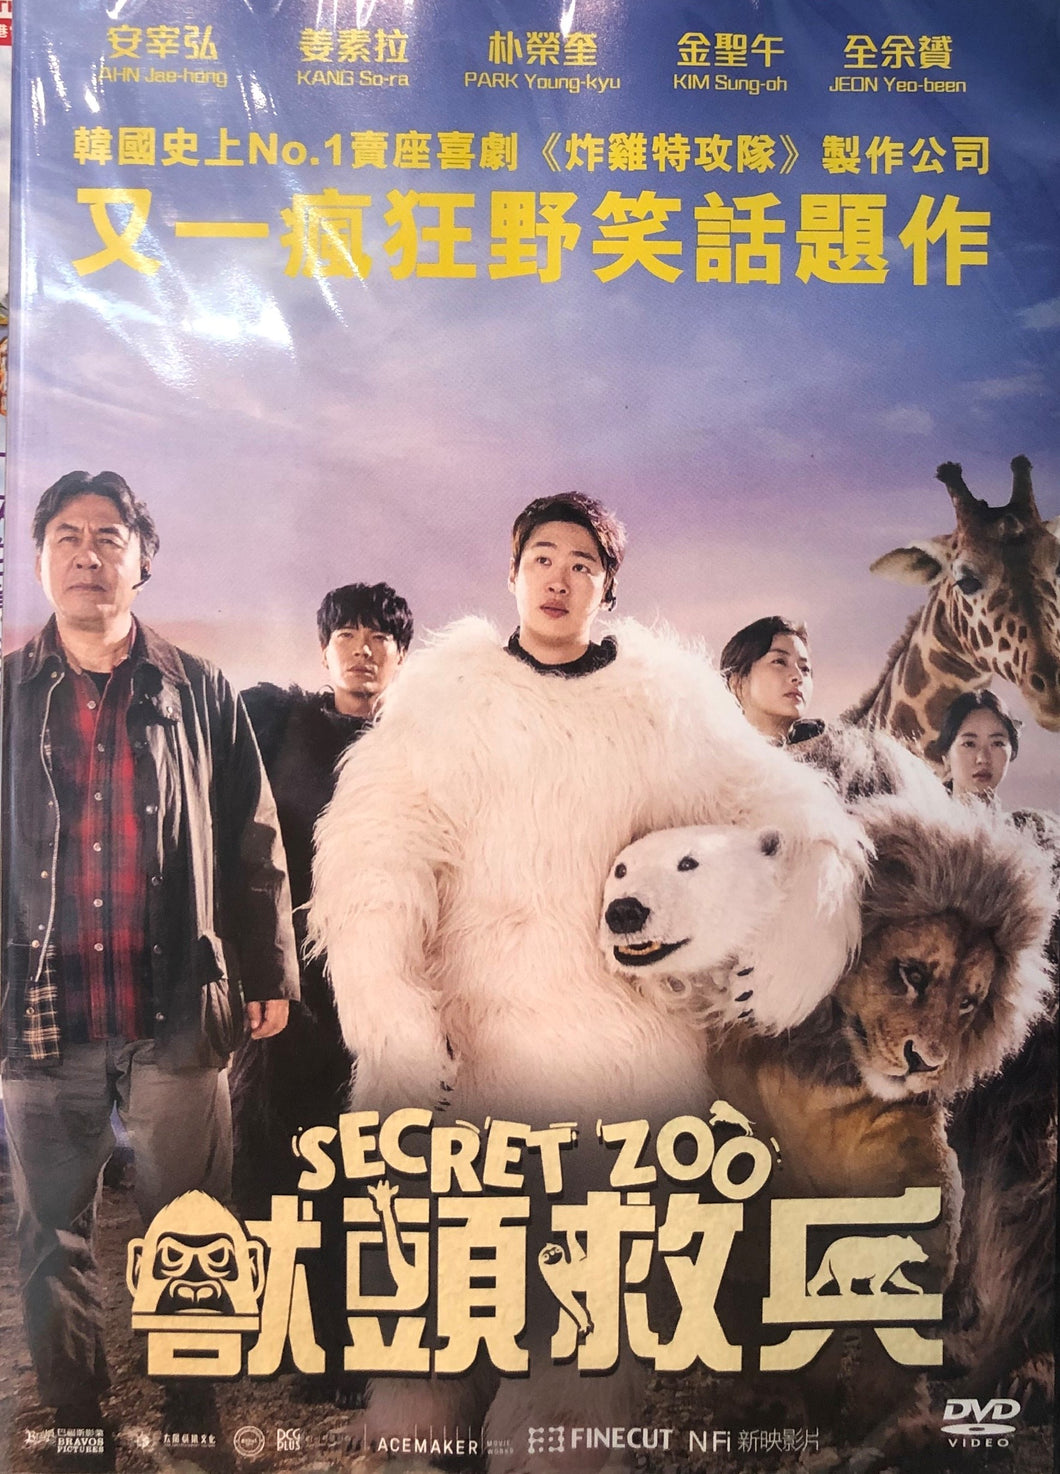 SECRET ZOO 獸頭救兵 2019 (Korean Movie) DVD ENGLISH SUBTITLES (REGION 3)